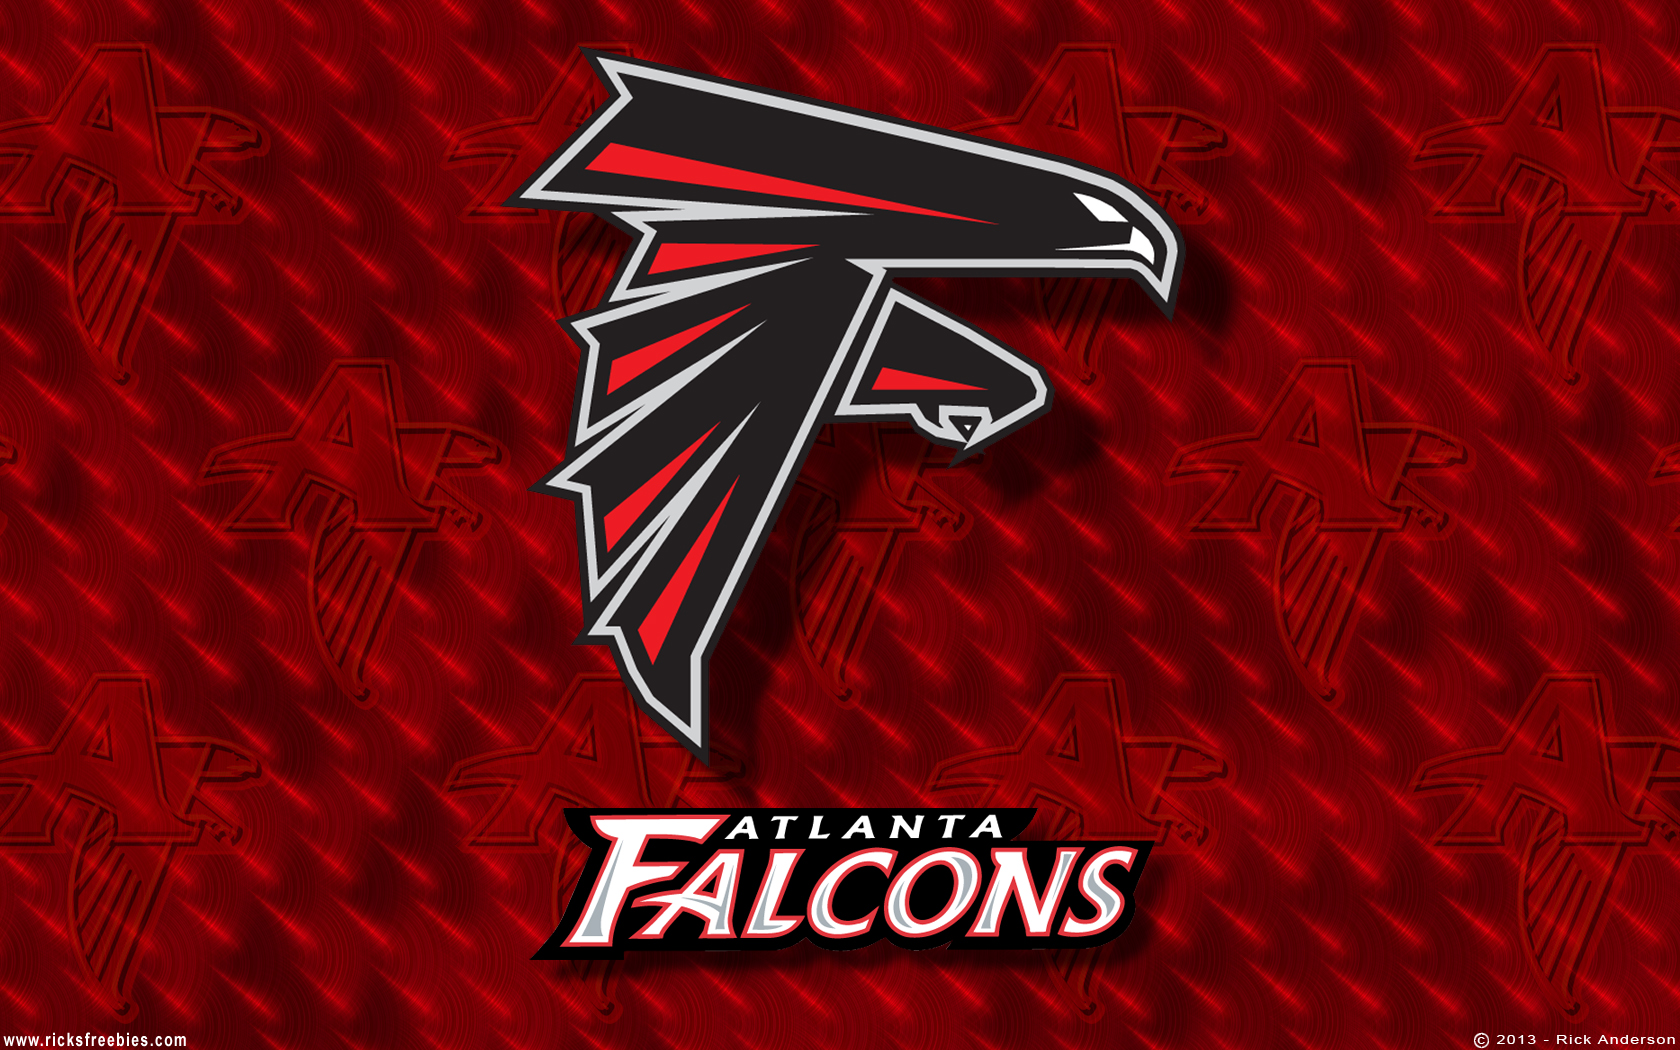 Atlanta Falcons Images: Atlanta Falcons Wallpaper Desktop